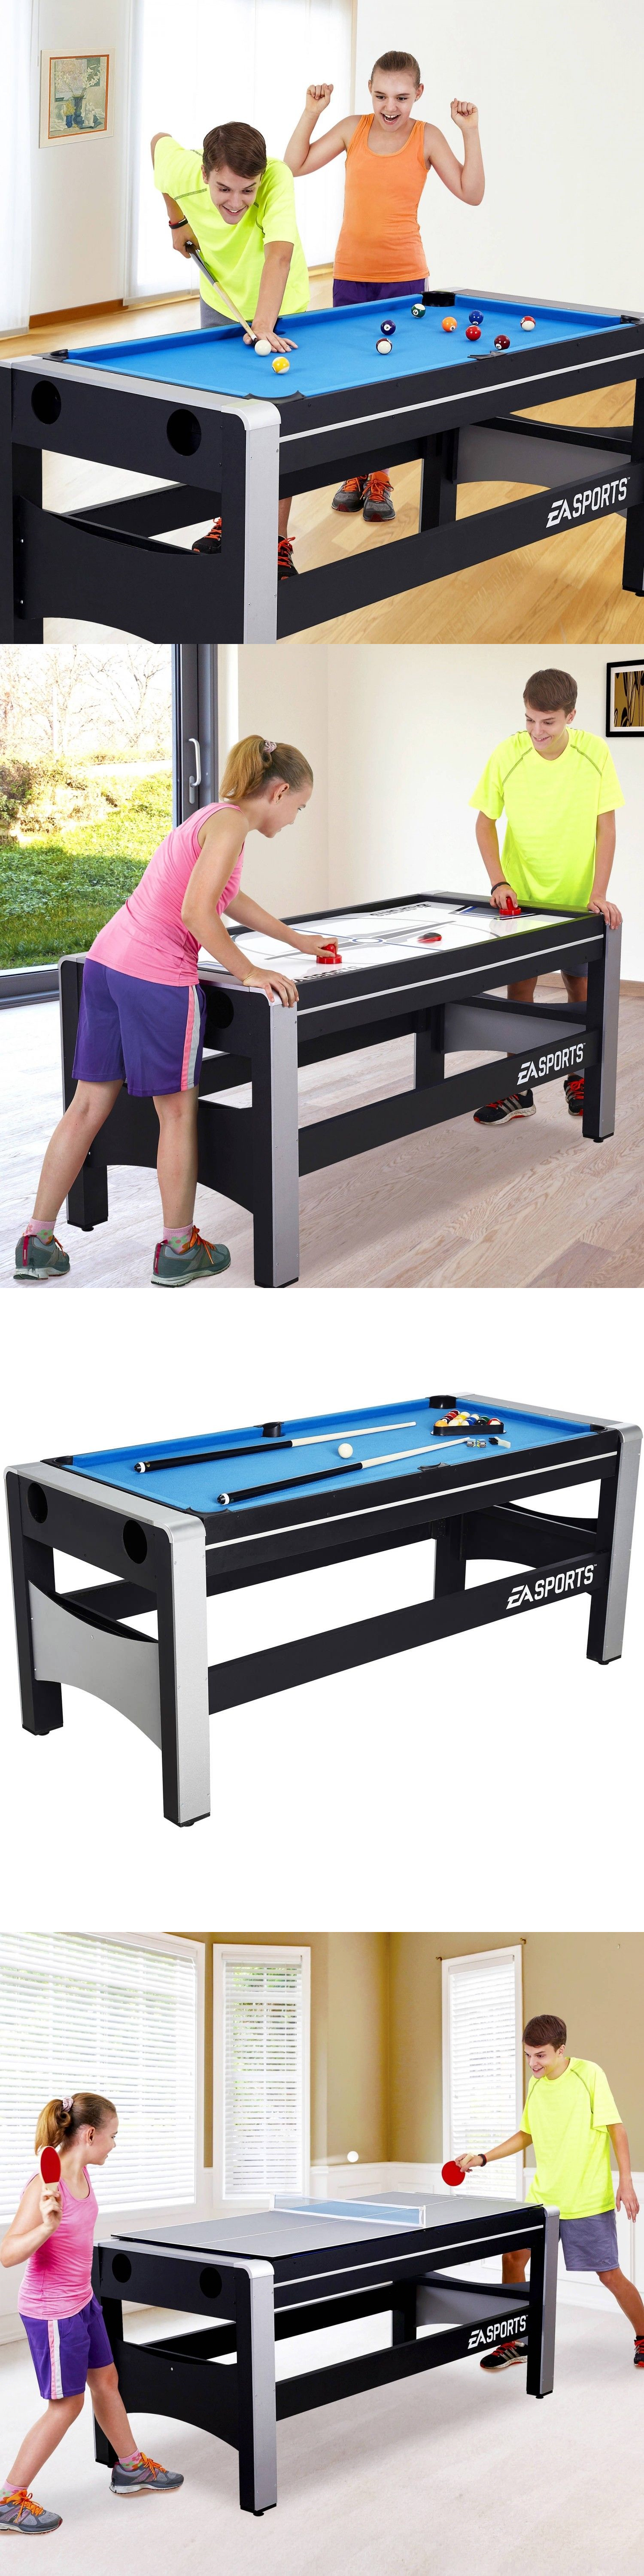 Air Hockey 36275: 72 Game Table Combo Table Tennis Hover Hockey Finger  Shoot Basketball Billiards